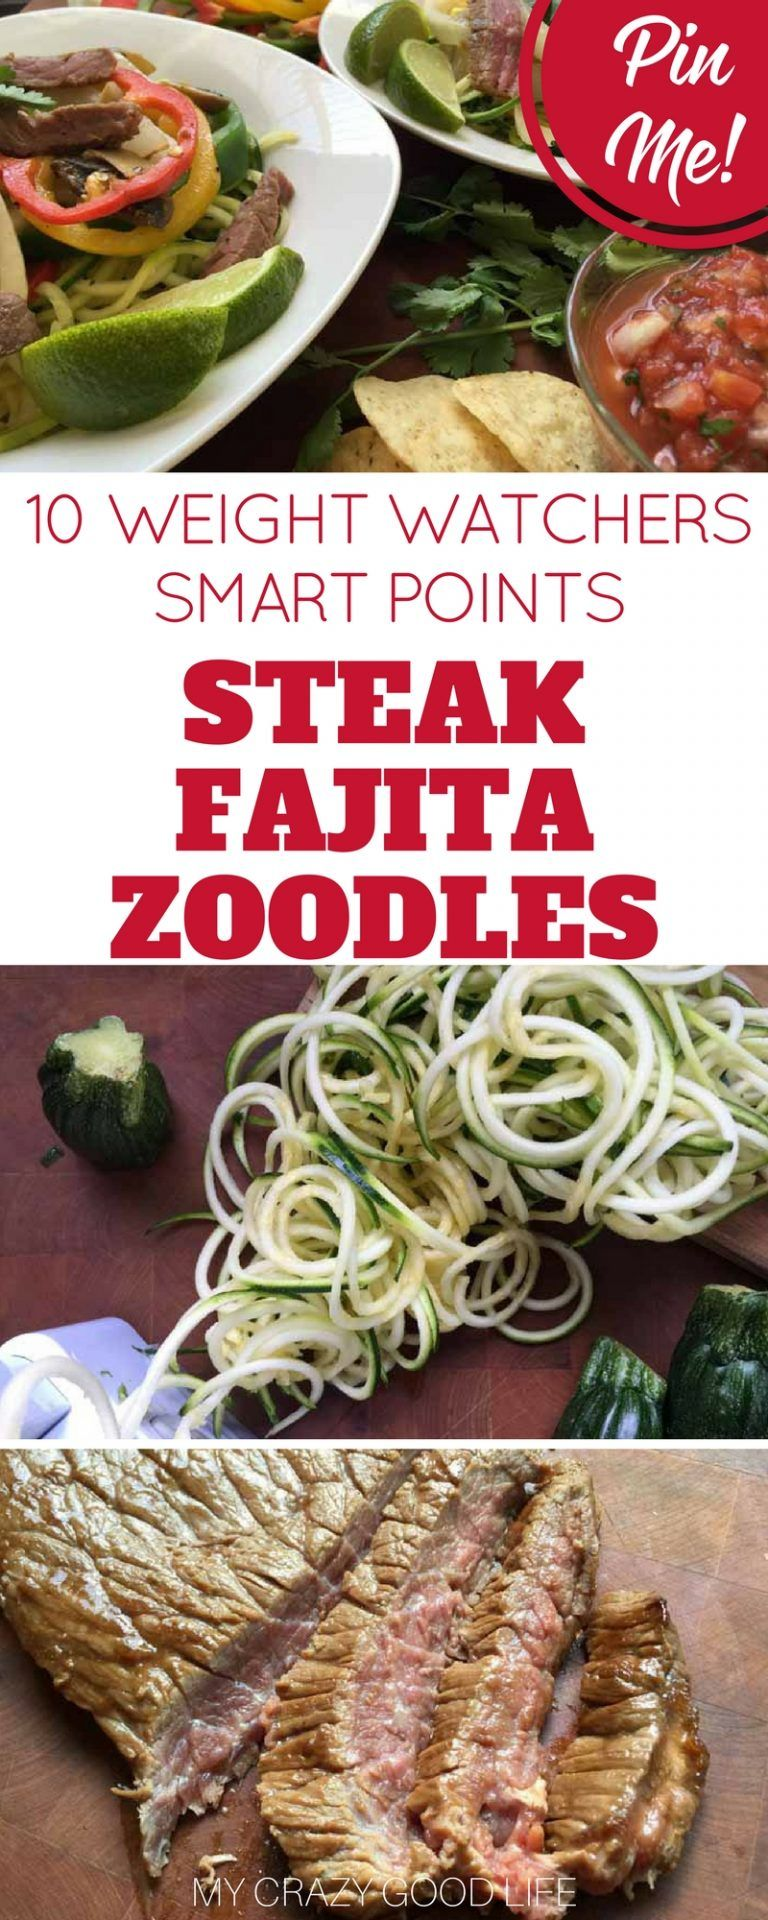 10 Weight Watchers Smart Points Steak Fajita Zoodles are great for dinner or parties. The whole family can build their perfect fajita bowl!